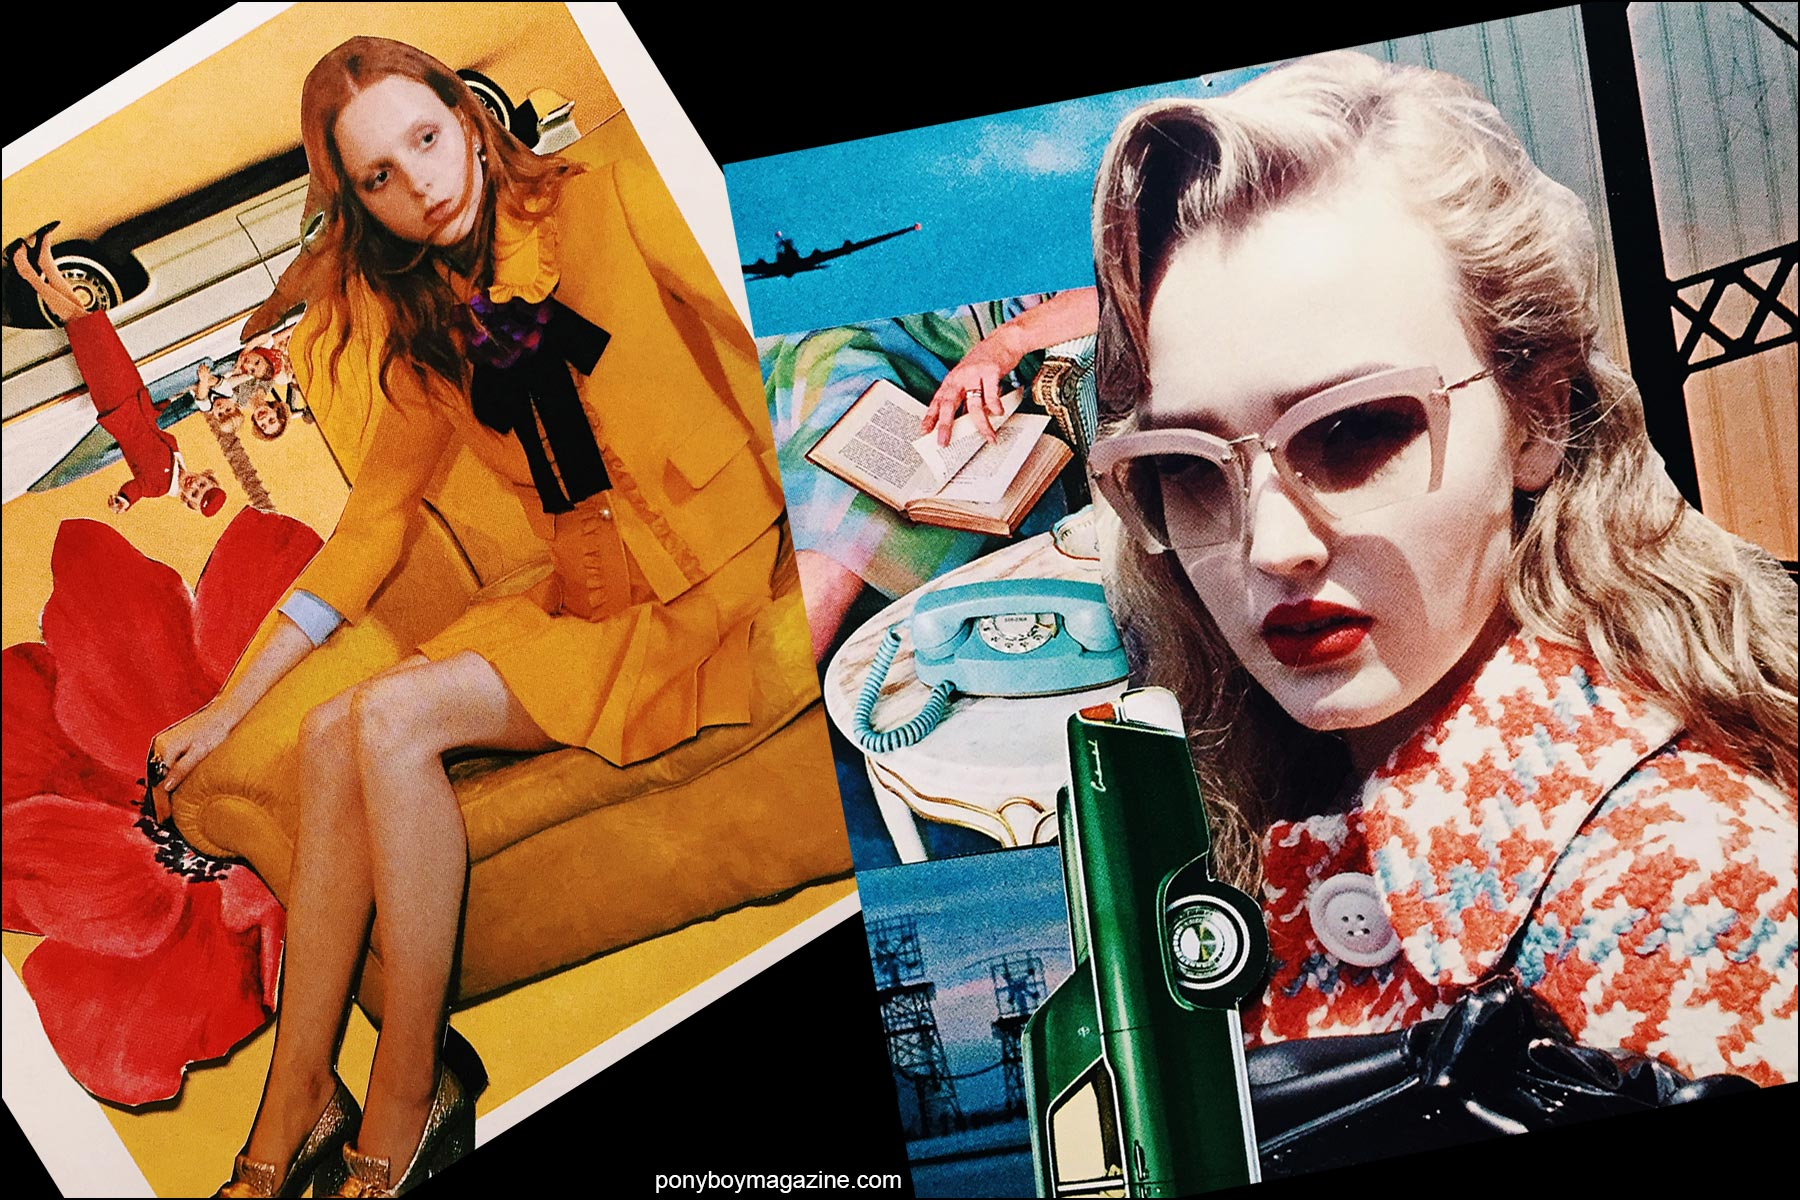 Collage artwork of Gucci and Miu Miu images by Patrick Keohane for RS Theory. Ponyboy magazine NY.